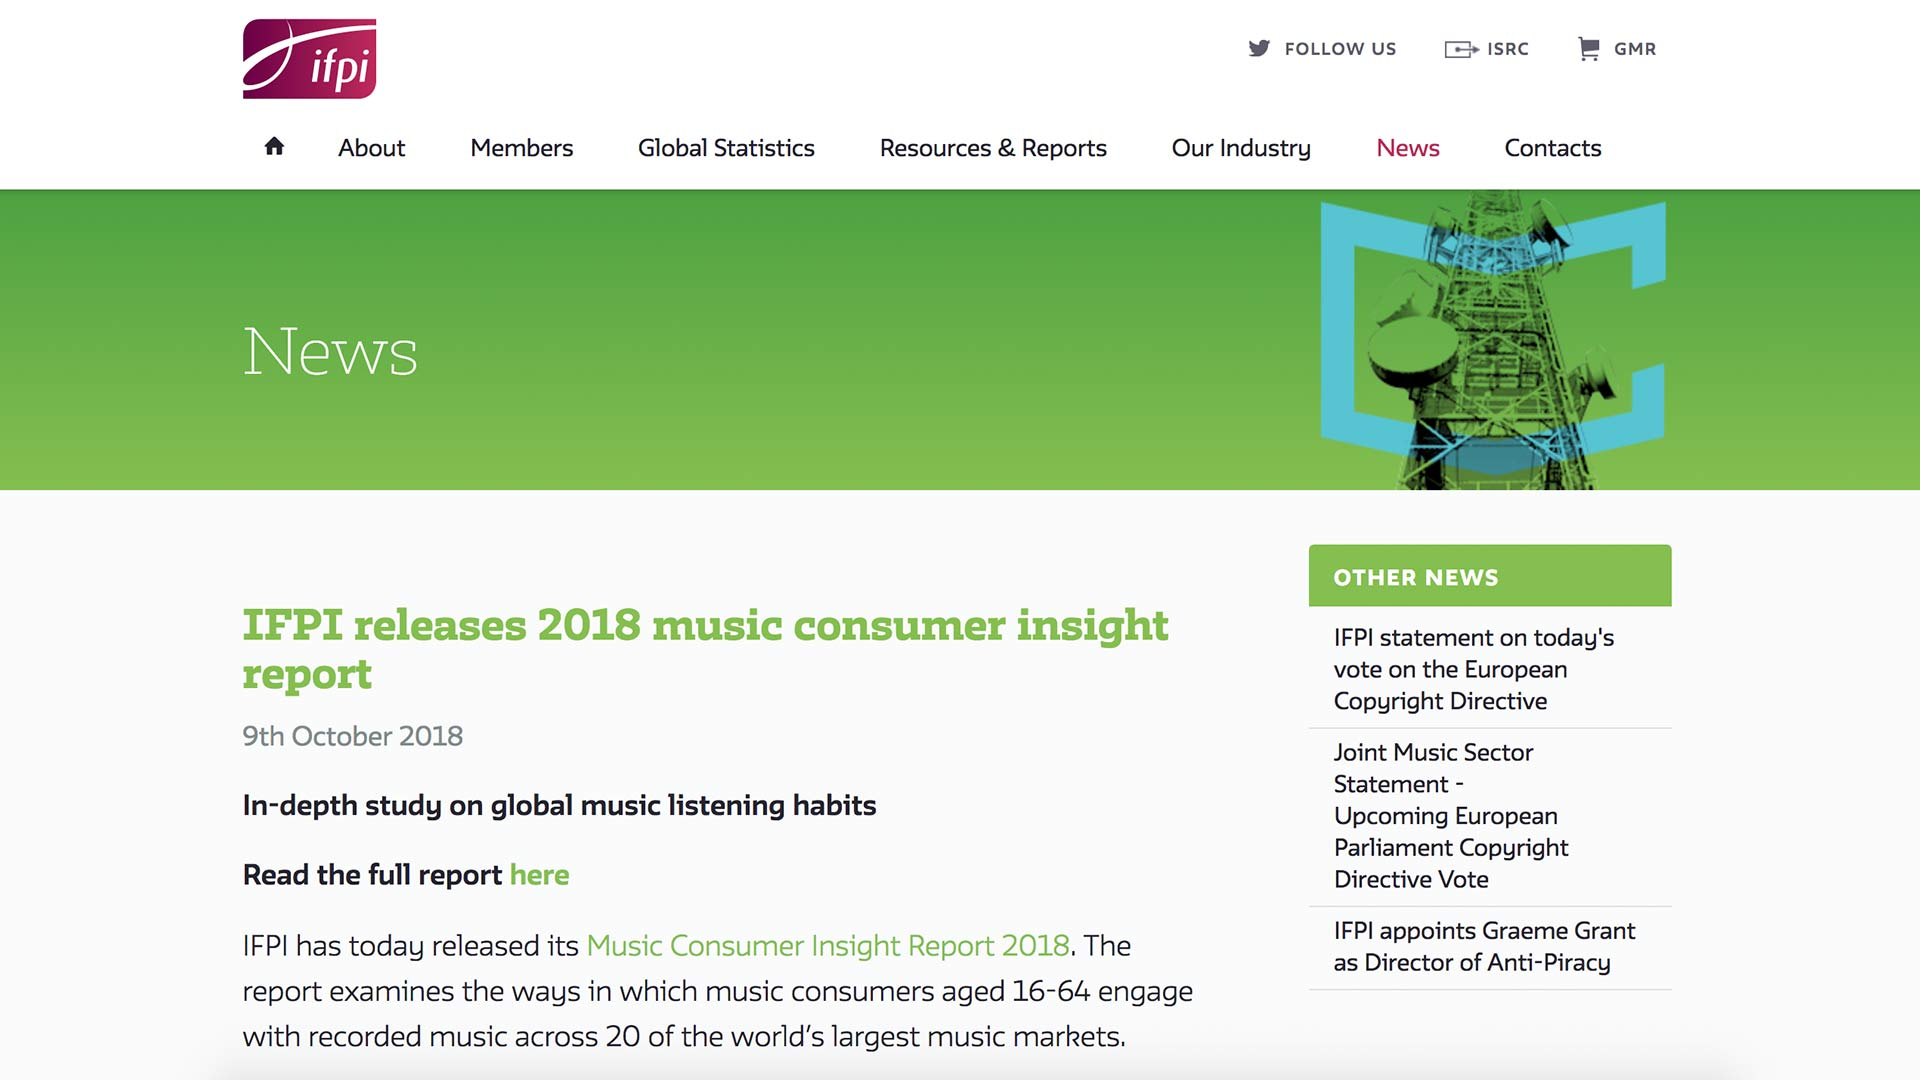 Fairness Rocks News IFPI releases 2018 music consumer insight report